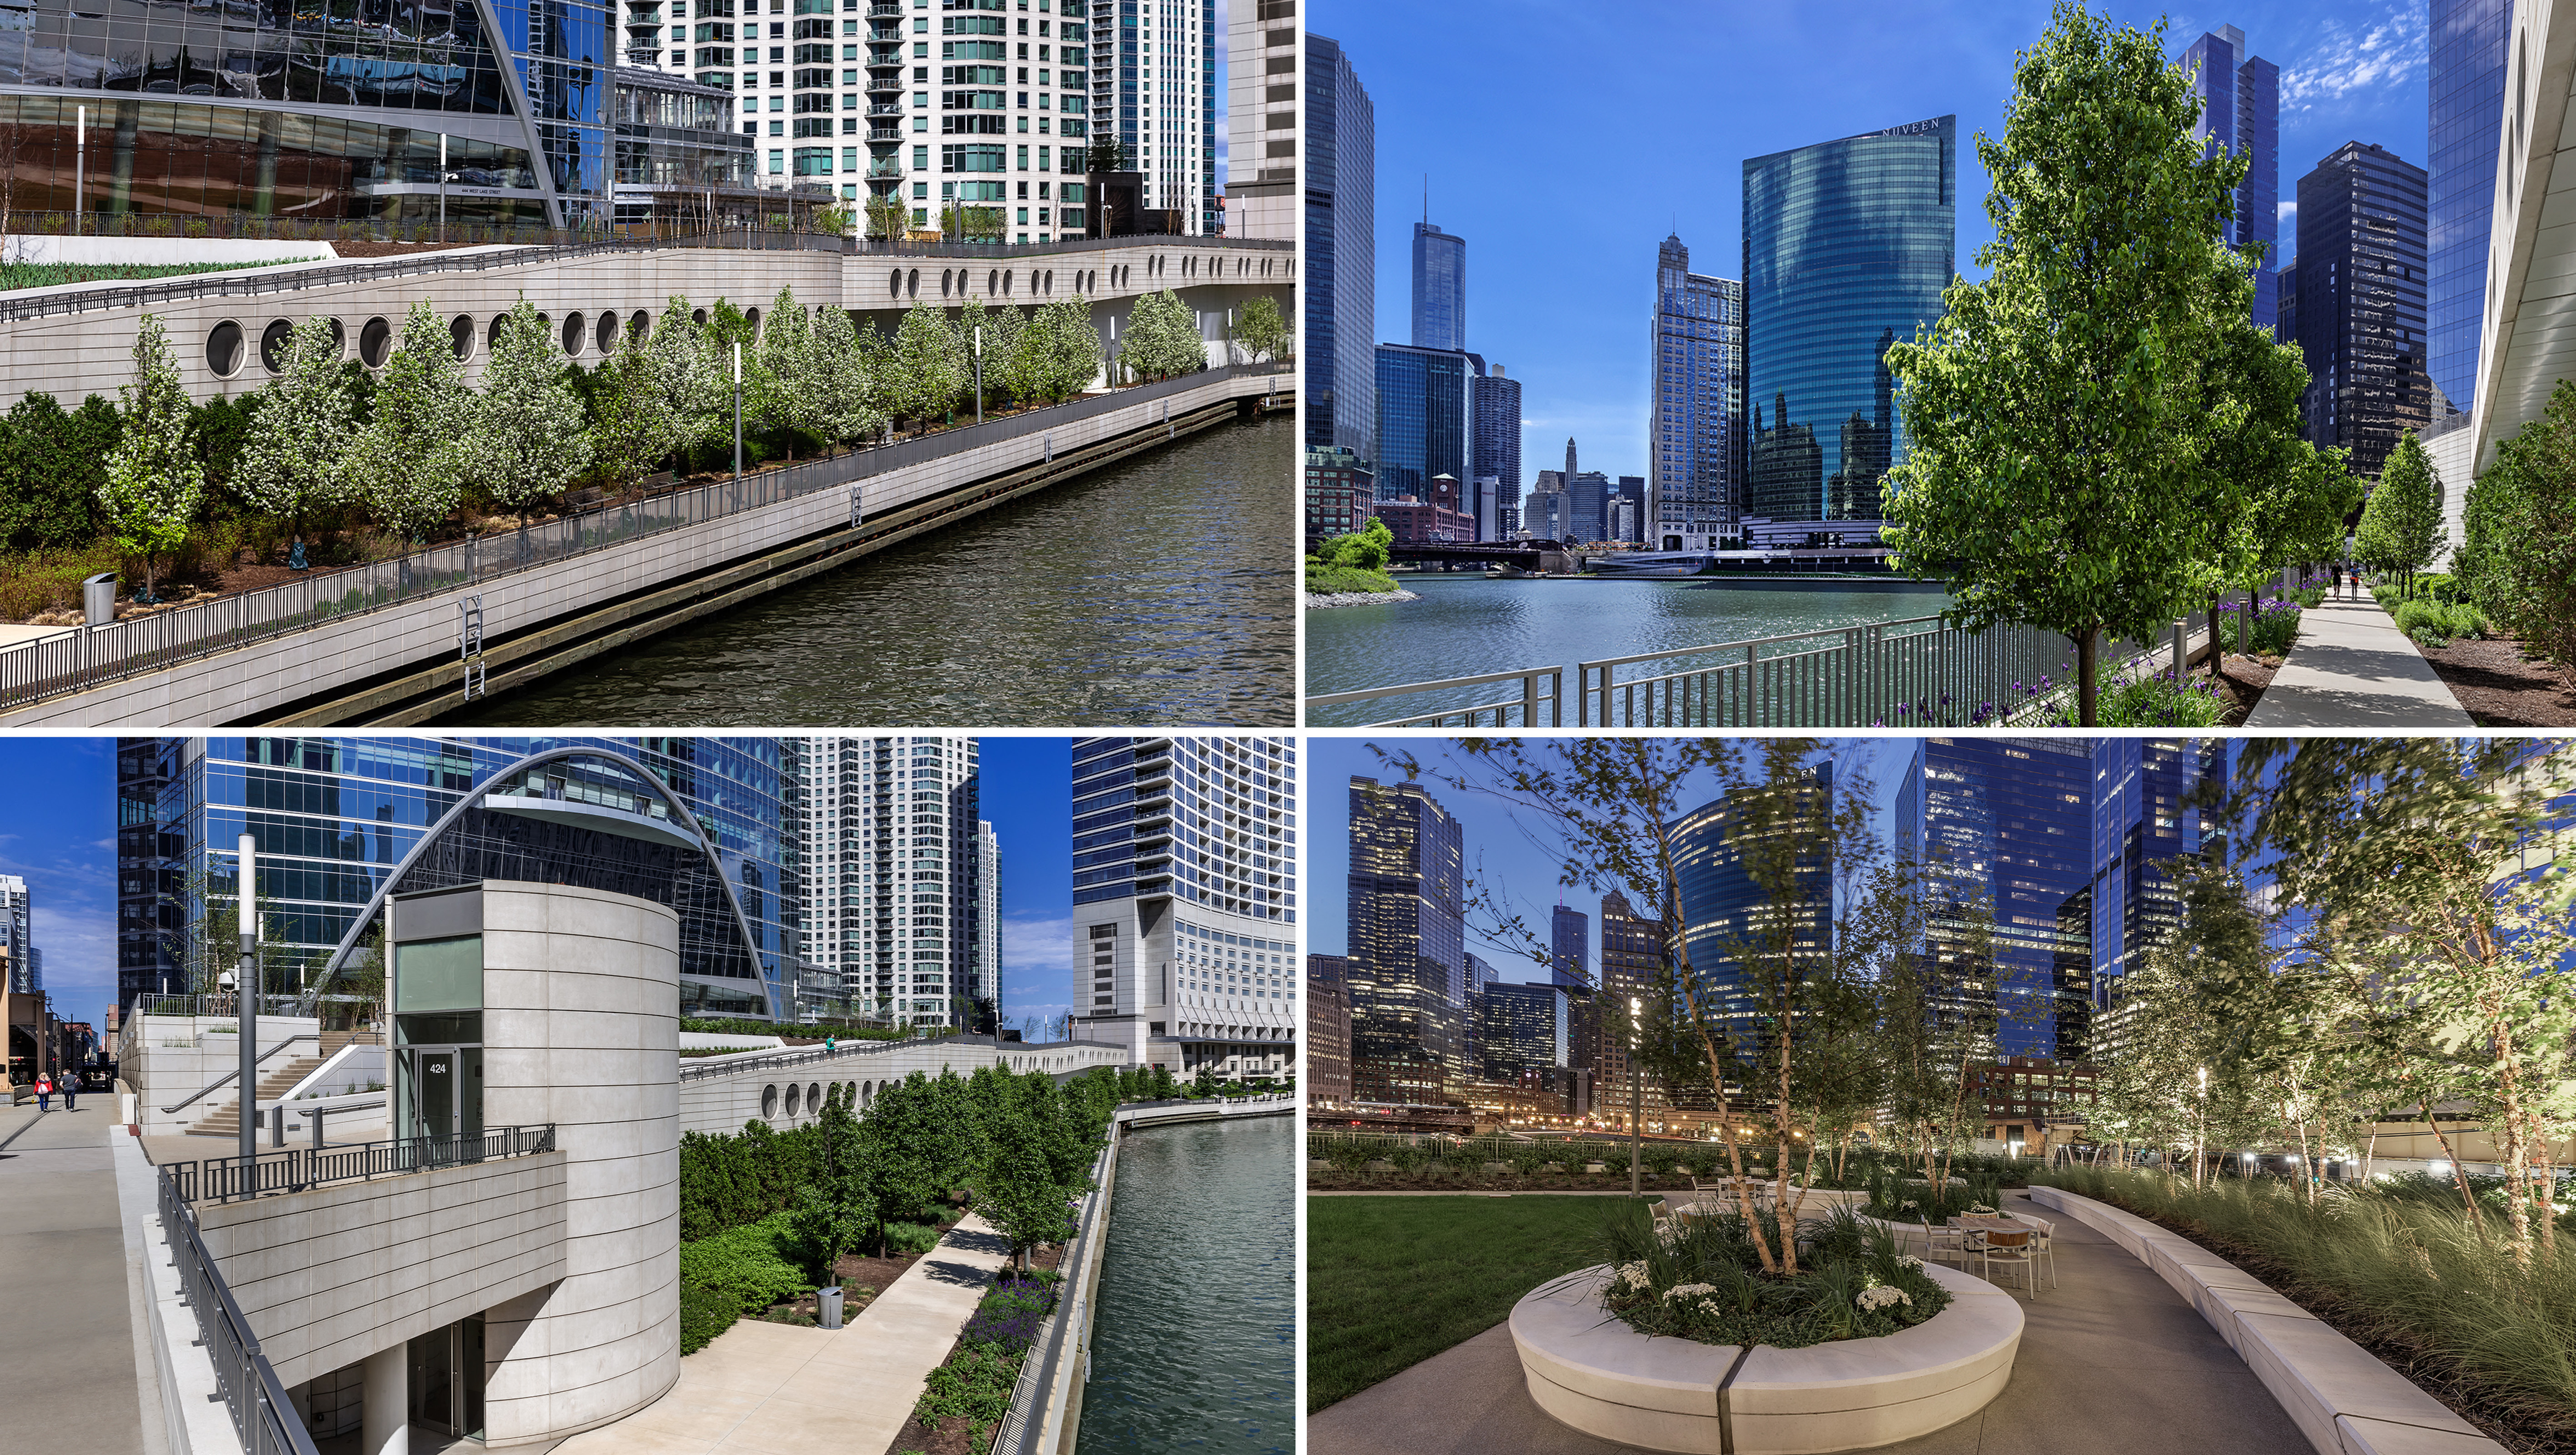 Riverpoint-Collage.jpg?mtime=20180425110